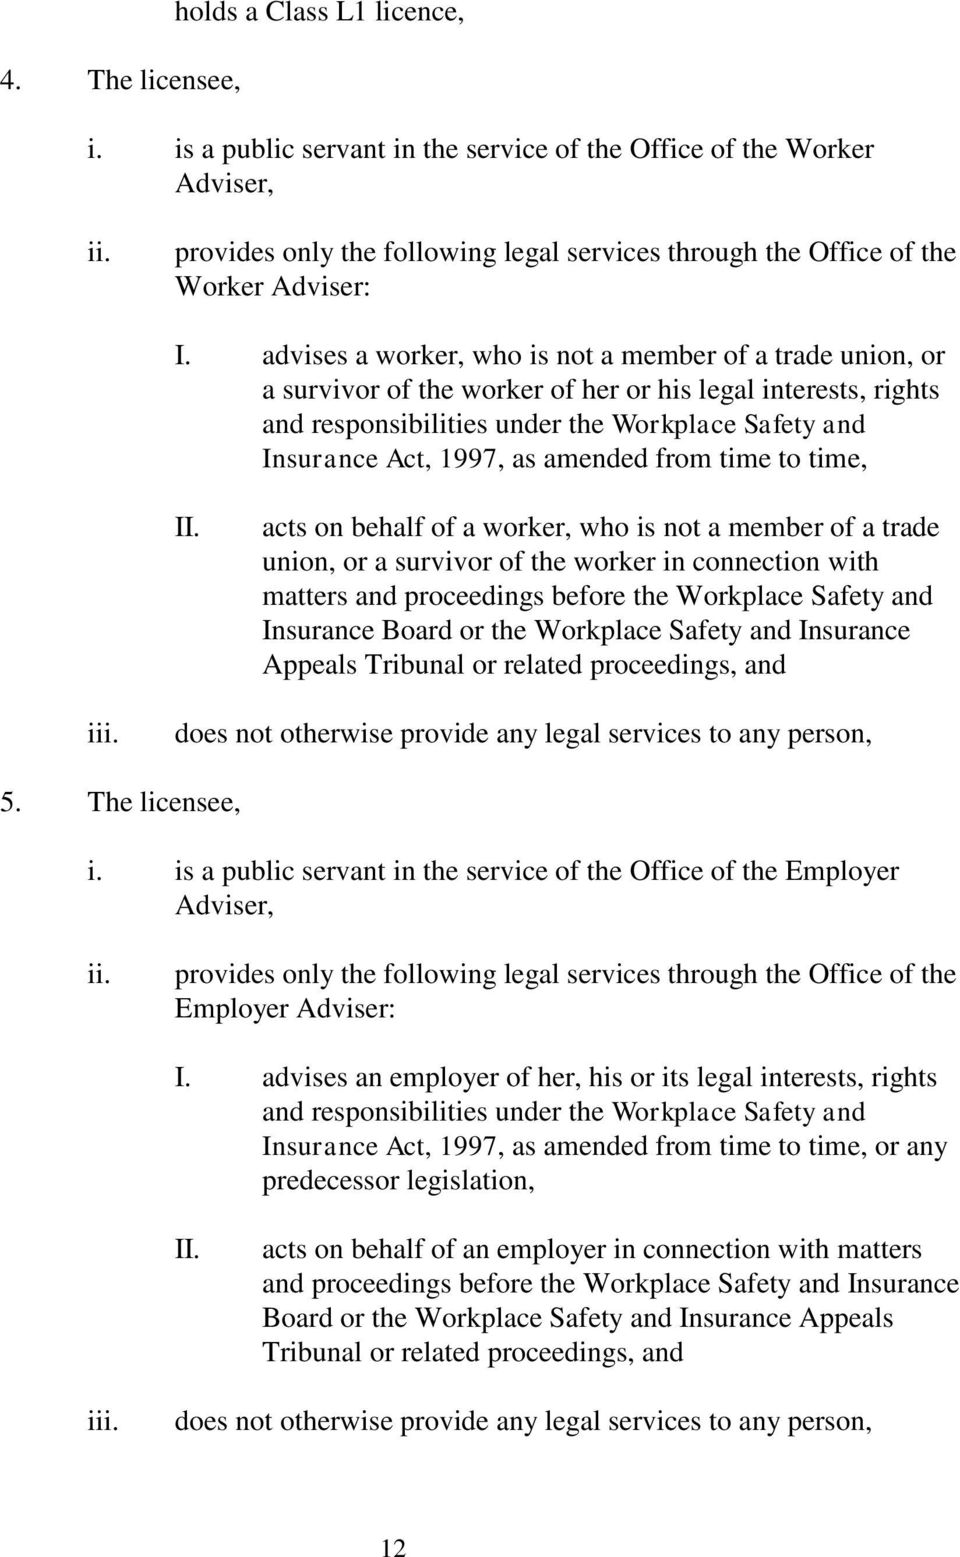 advises a worker, who is not a member of a trade union, or a survivor of the worker of her or his legal interests, rights and responsibilities under the Workplace Safety and Insurance Act, 1997, as